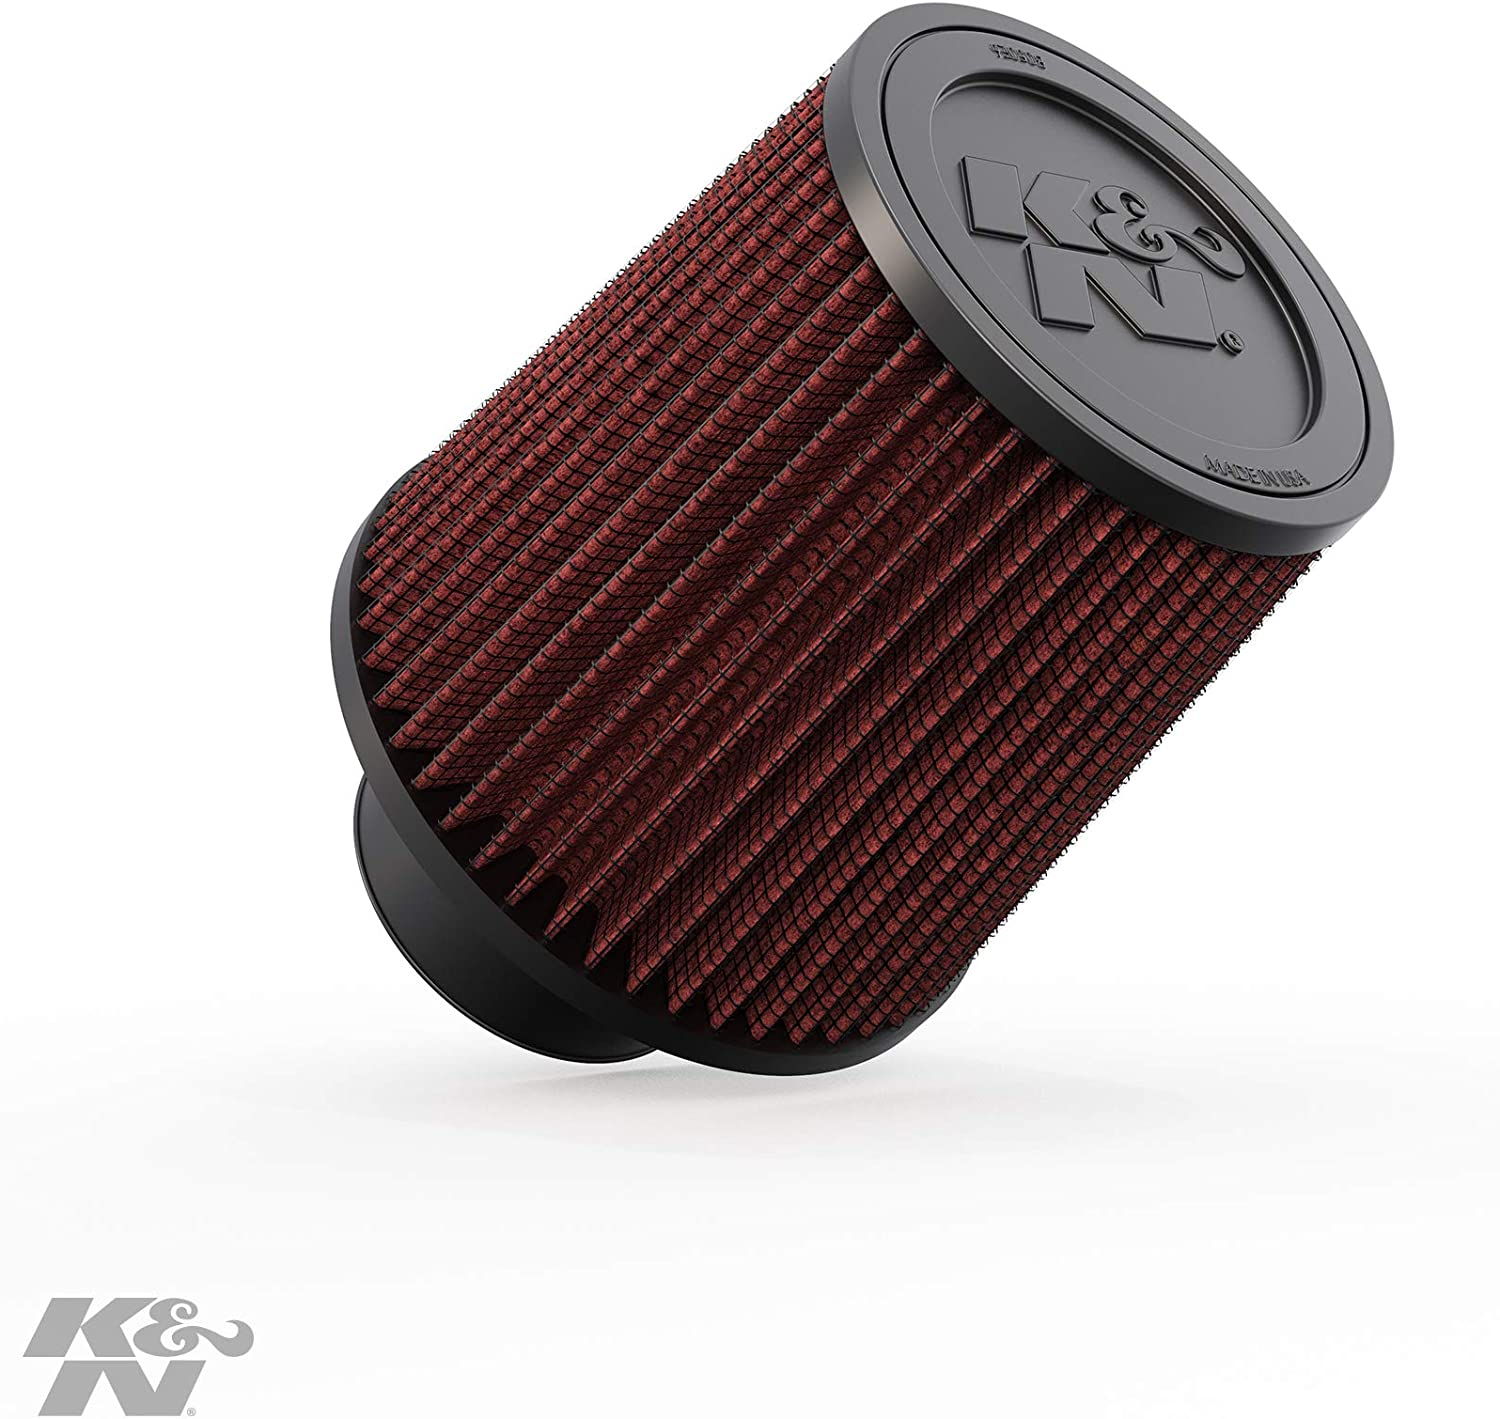 K/&N Filters RU-2520 Car and Motorcycle Universal Rubber Filter